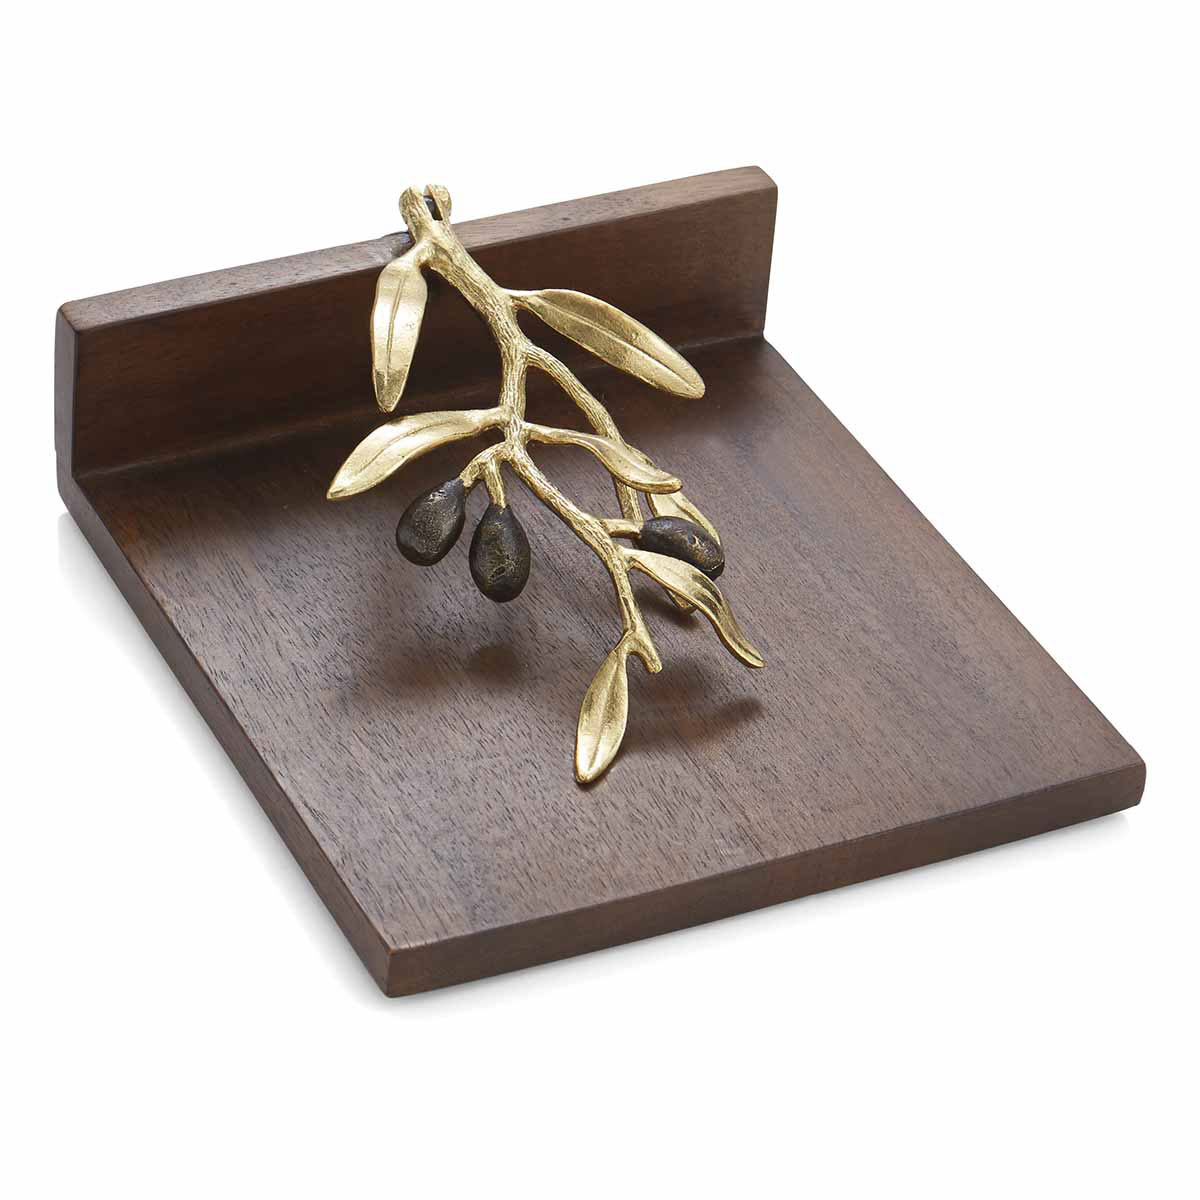 Michael Aram Olive Branch Dinner Napkin Holder